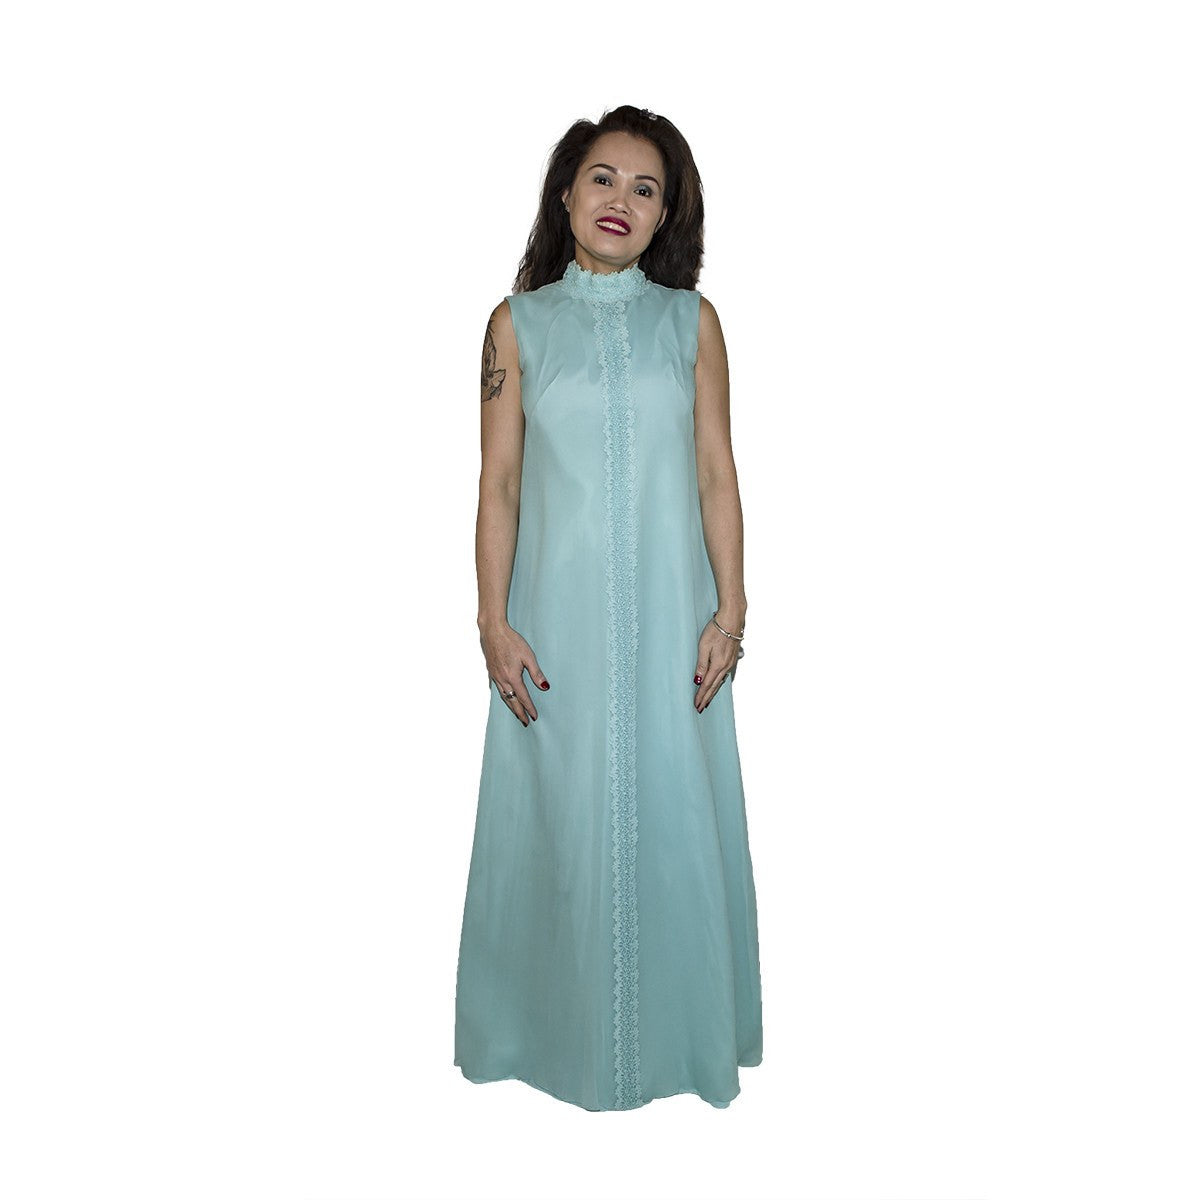 1970s Aqua Blue Column Gown 2 in Silk Chiffon & Lace